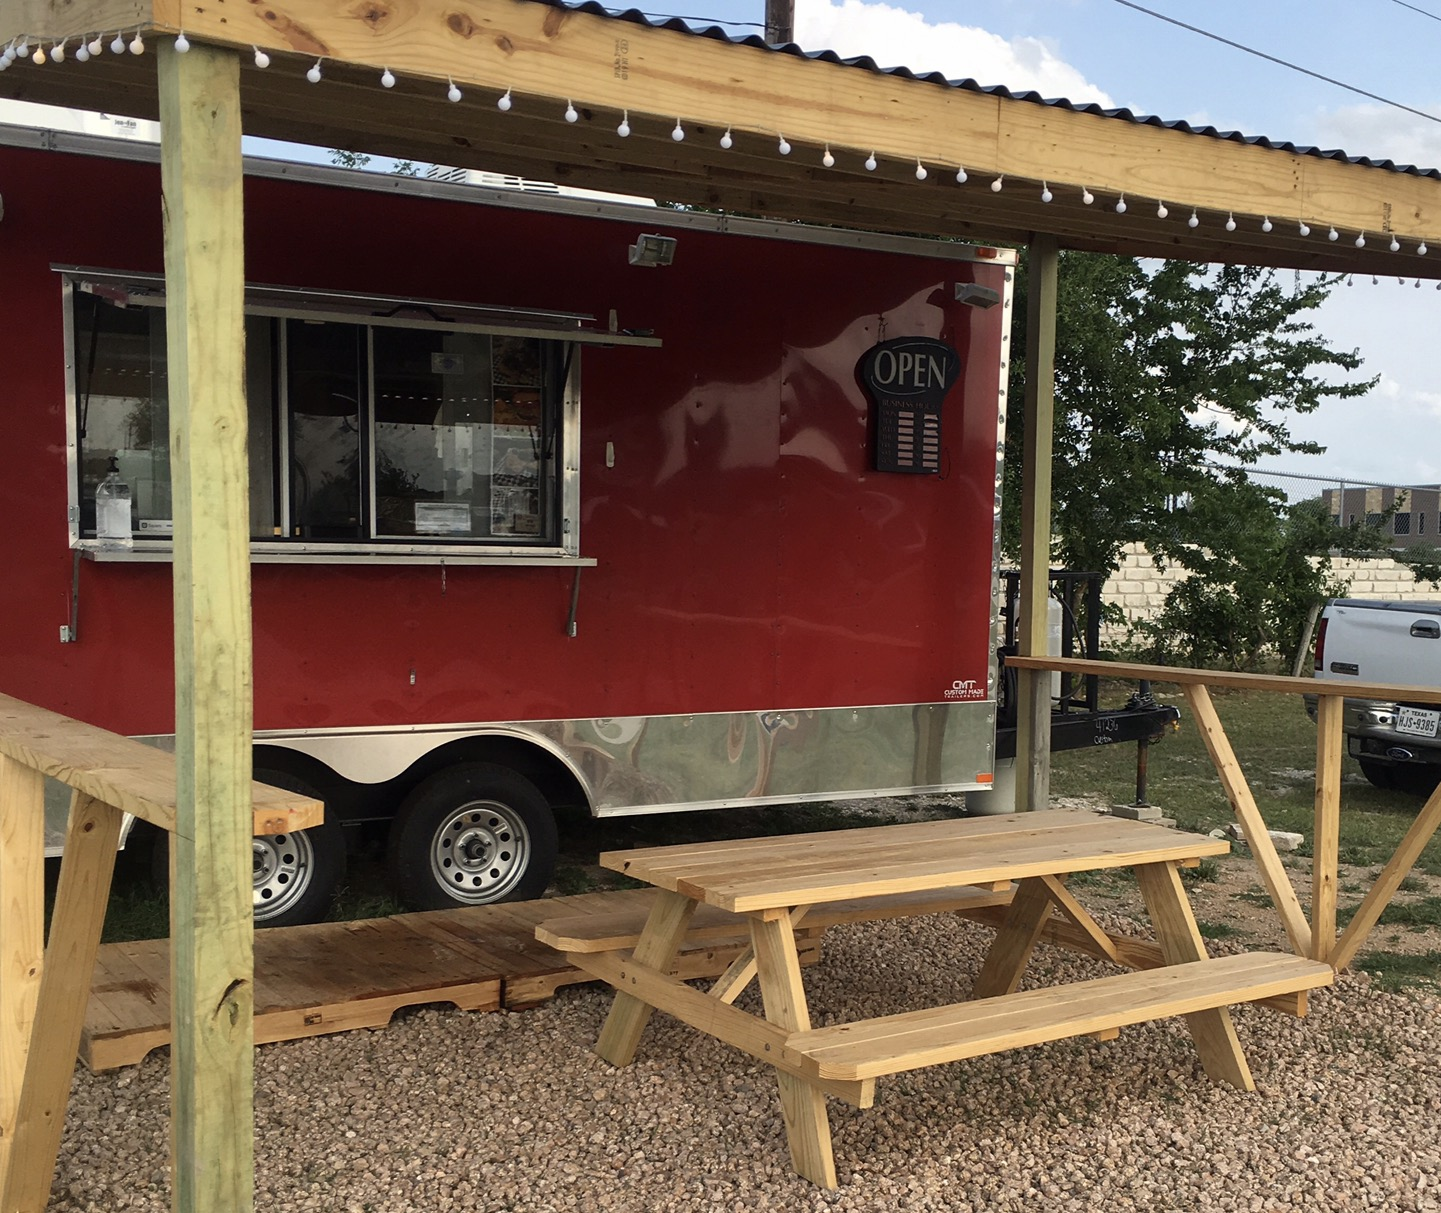 R GEE TEXAS – Tacos, Burgers, And More